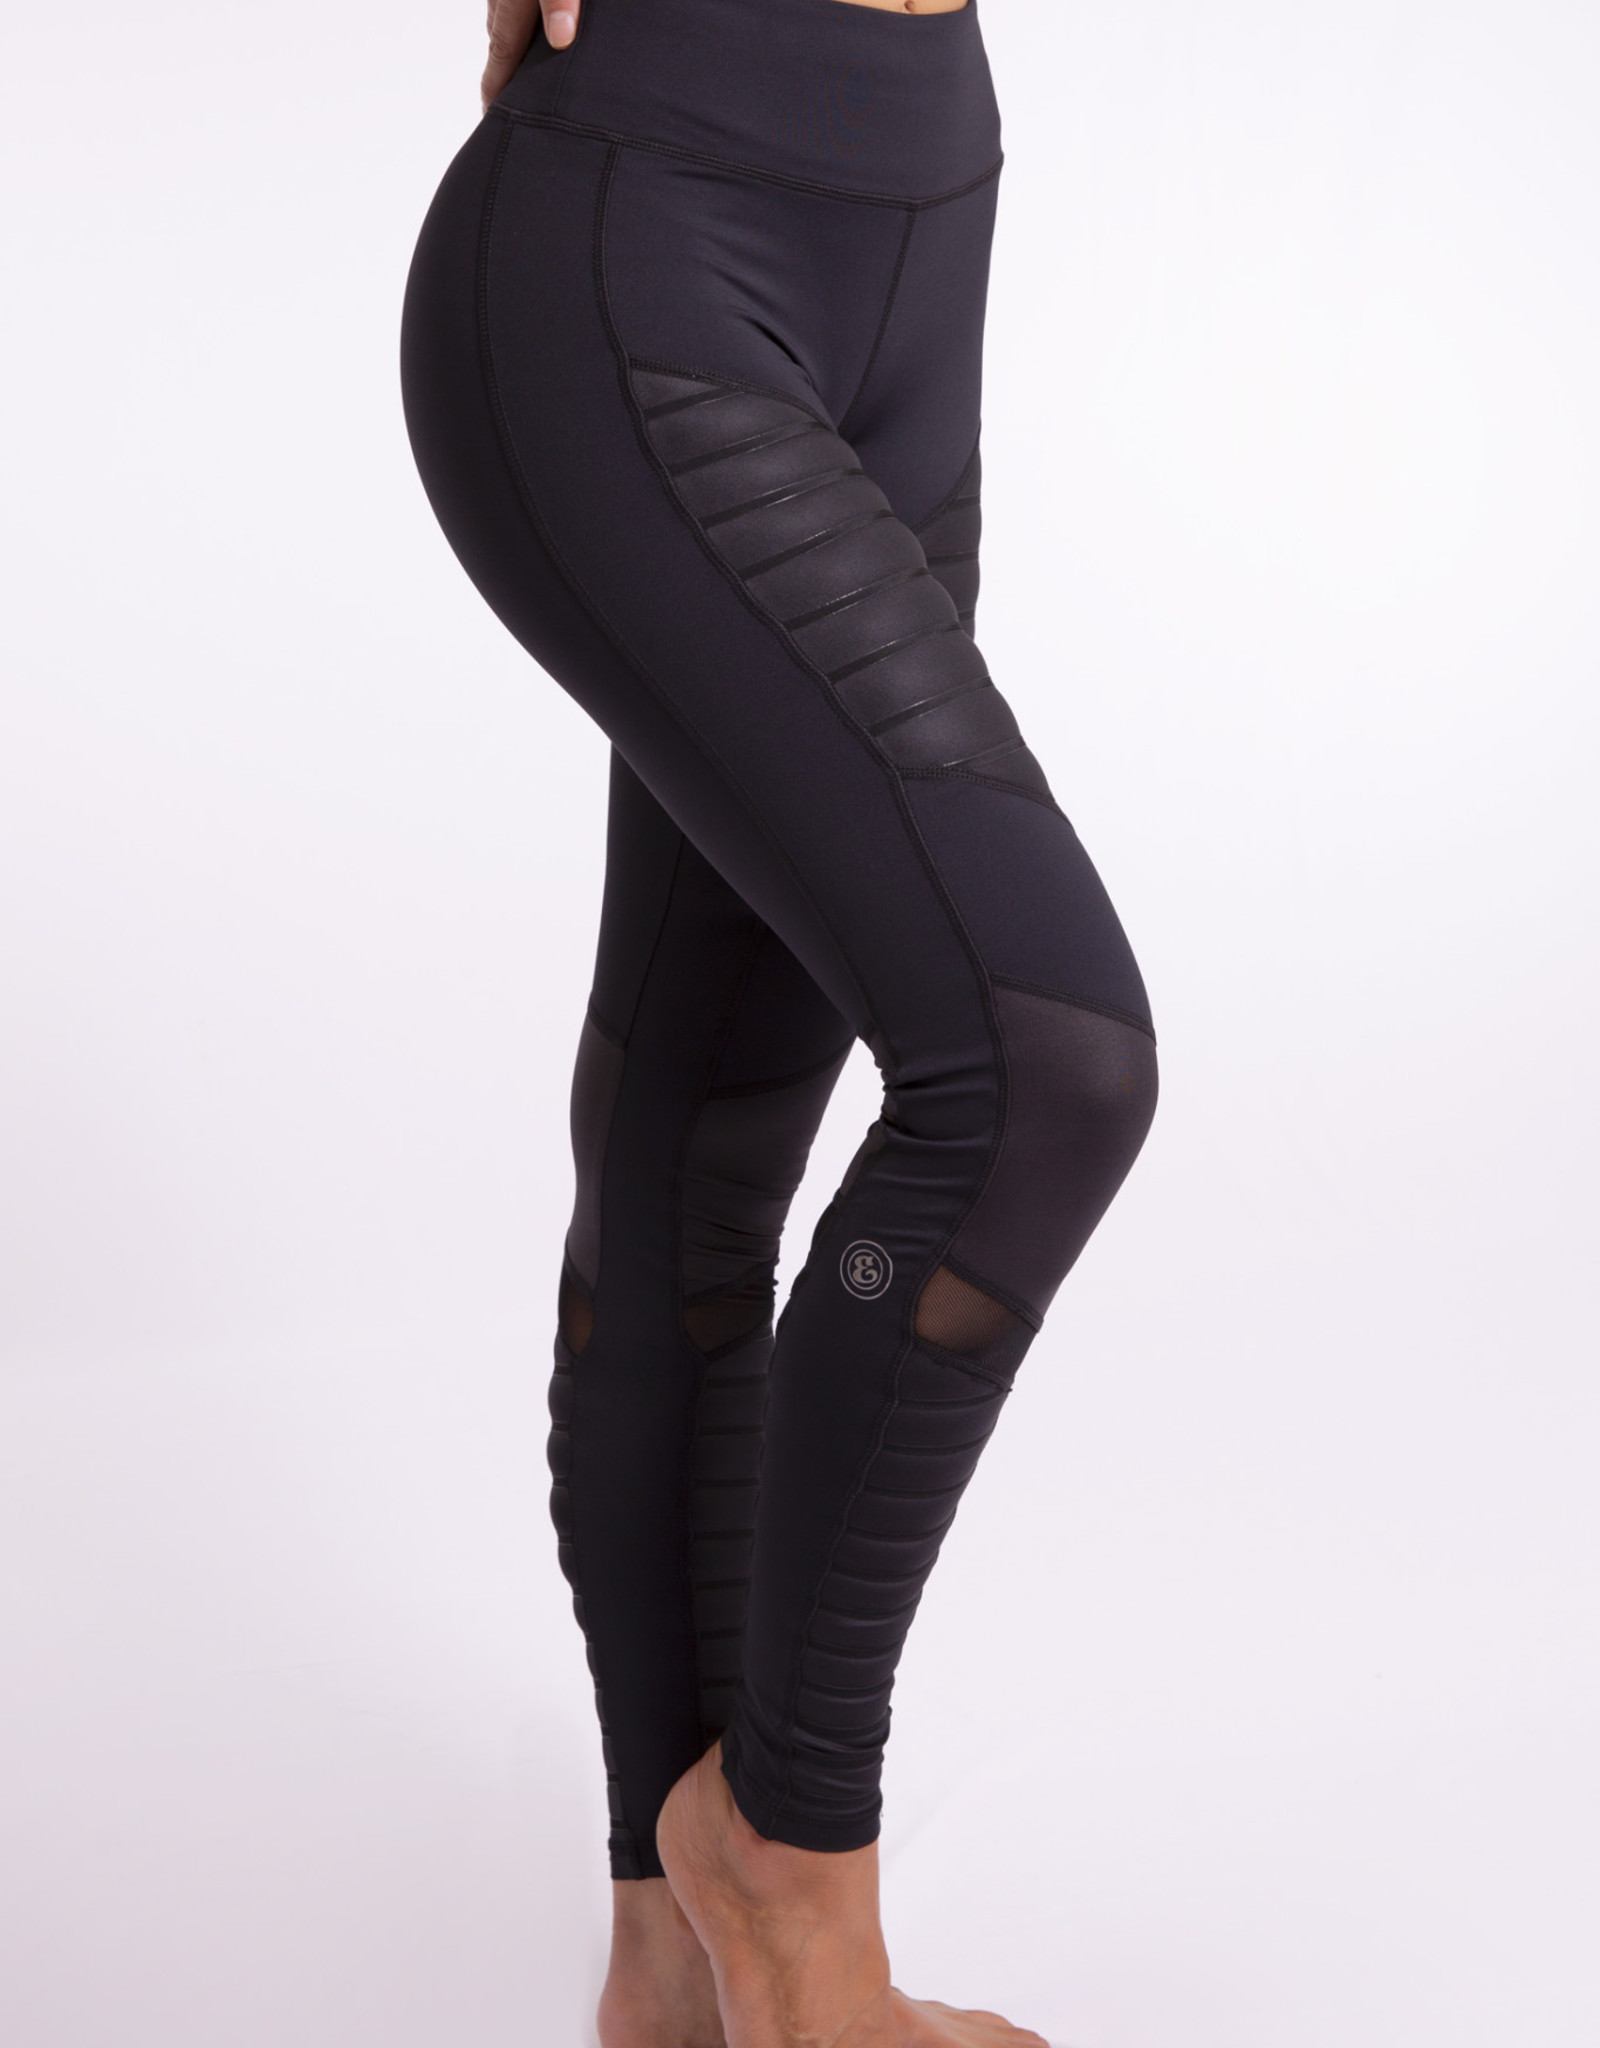 OKANAGAN ATHLETE NIGHT PANT (S) BLK